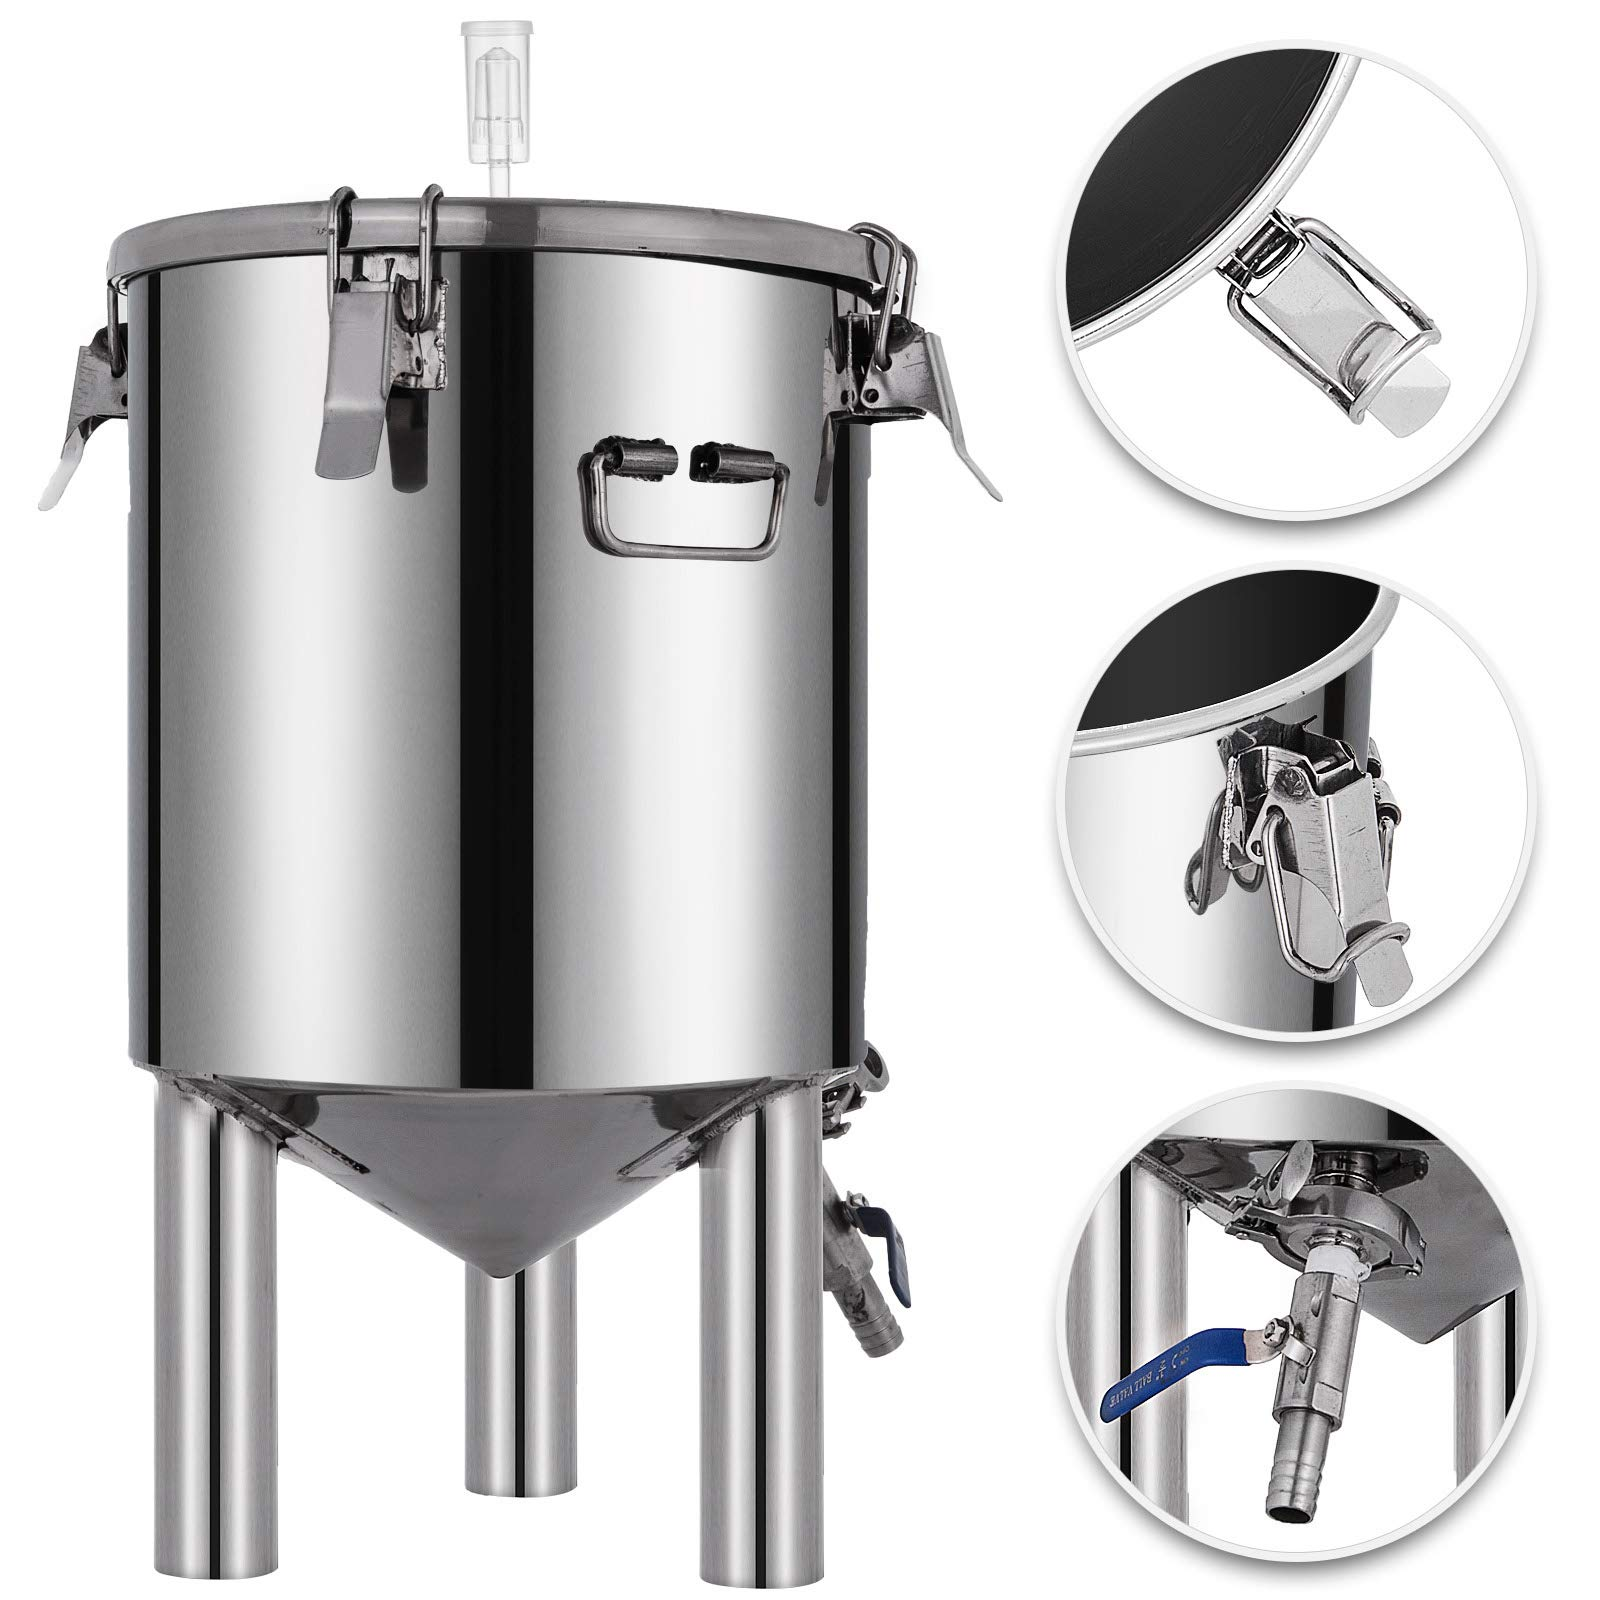 VEVOR 7 Gallon Stainless Steel Brew Fermenter Home Brewing Brew Bucket Fermenter With conical base Brewing Equipment